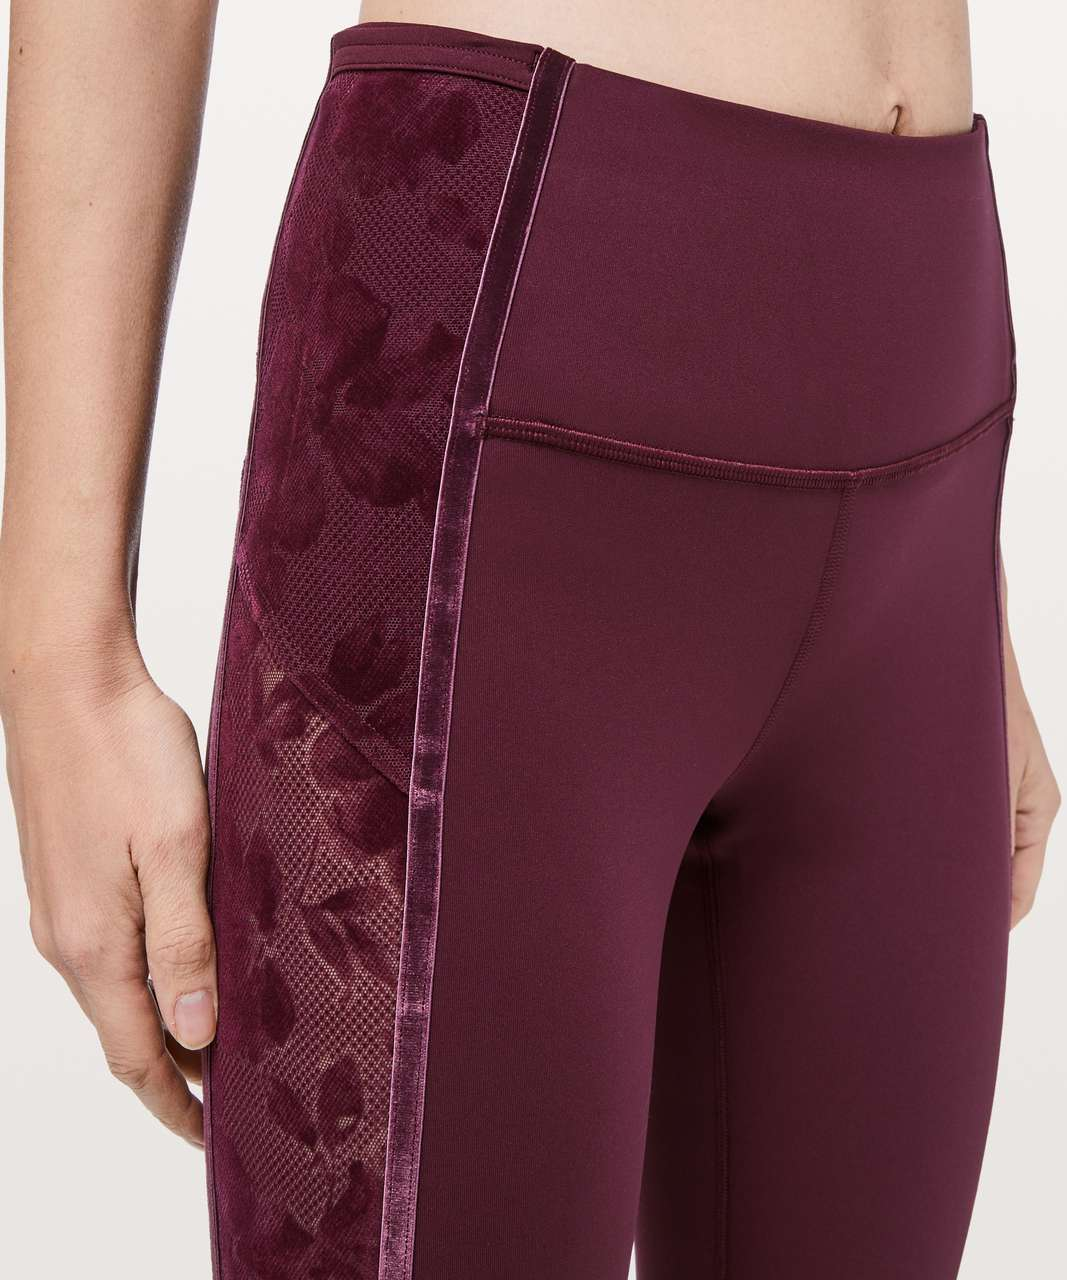 "Lululemon Wunder Under Crop High-Rise *Flocked 21"" - Dark Adobe / Scatter Floral Dark Adobe Dark Adobe"